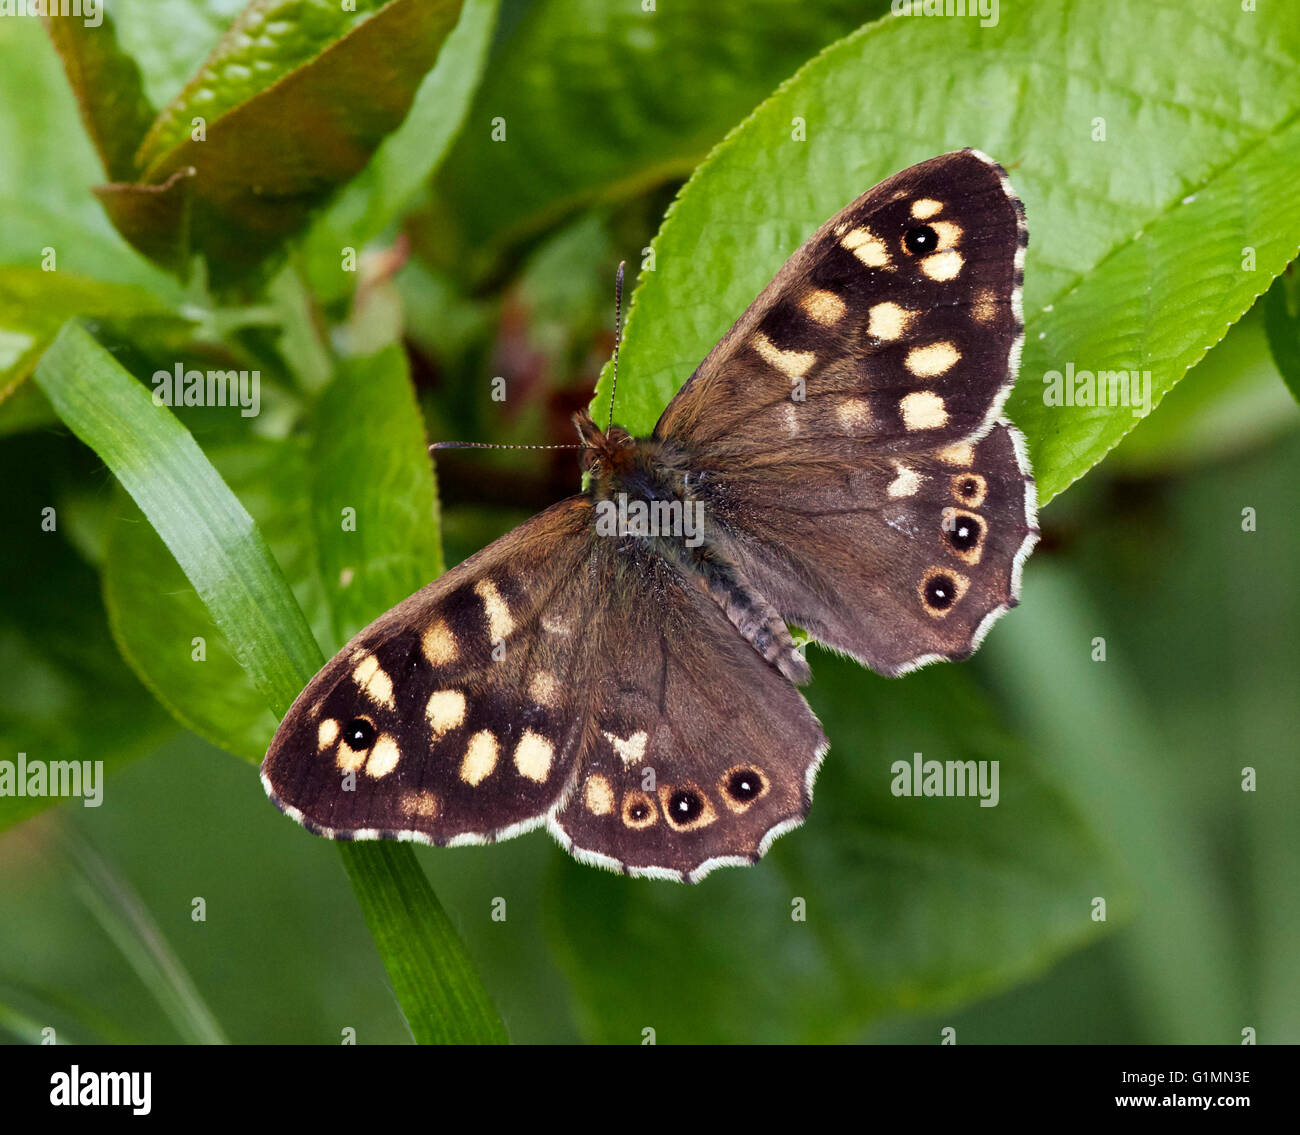 Speckled Wood butterfly.  Hurst Meadows, West Molesey, Surrey, England. - Stock Image